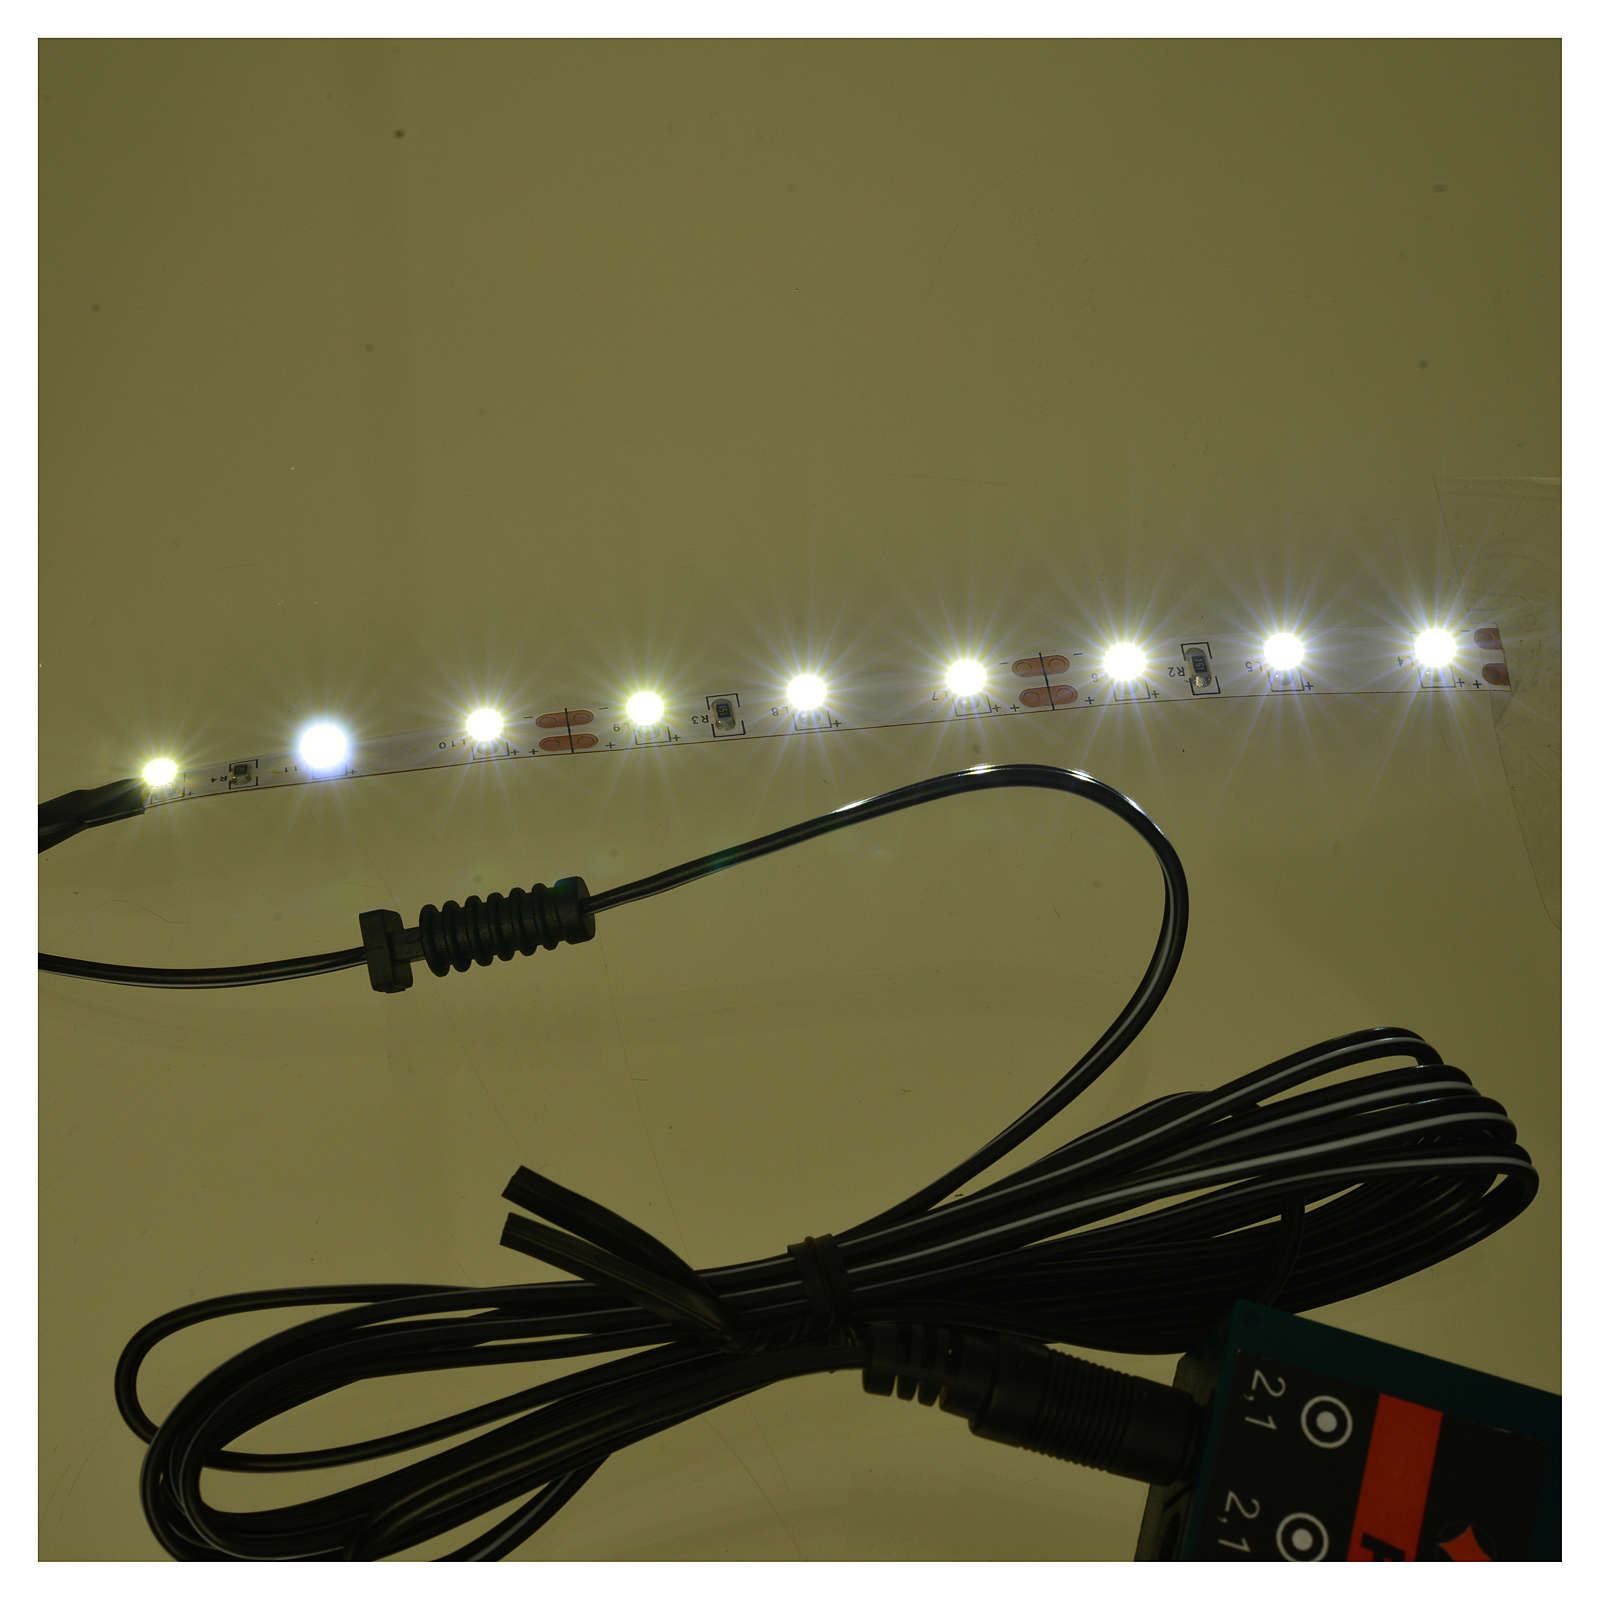 LED strip with 9 lights 0,8x12cm, cold white for Frisalight 4